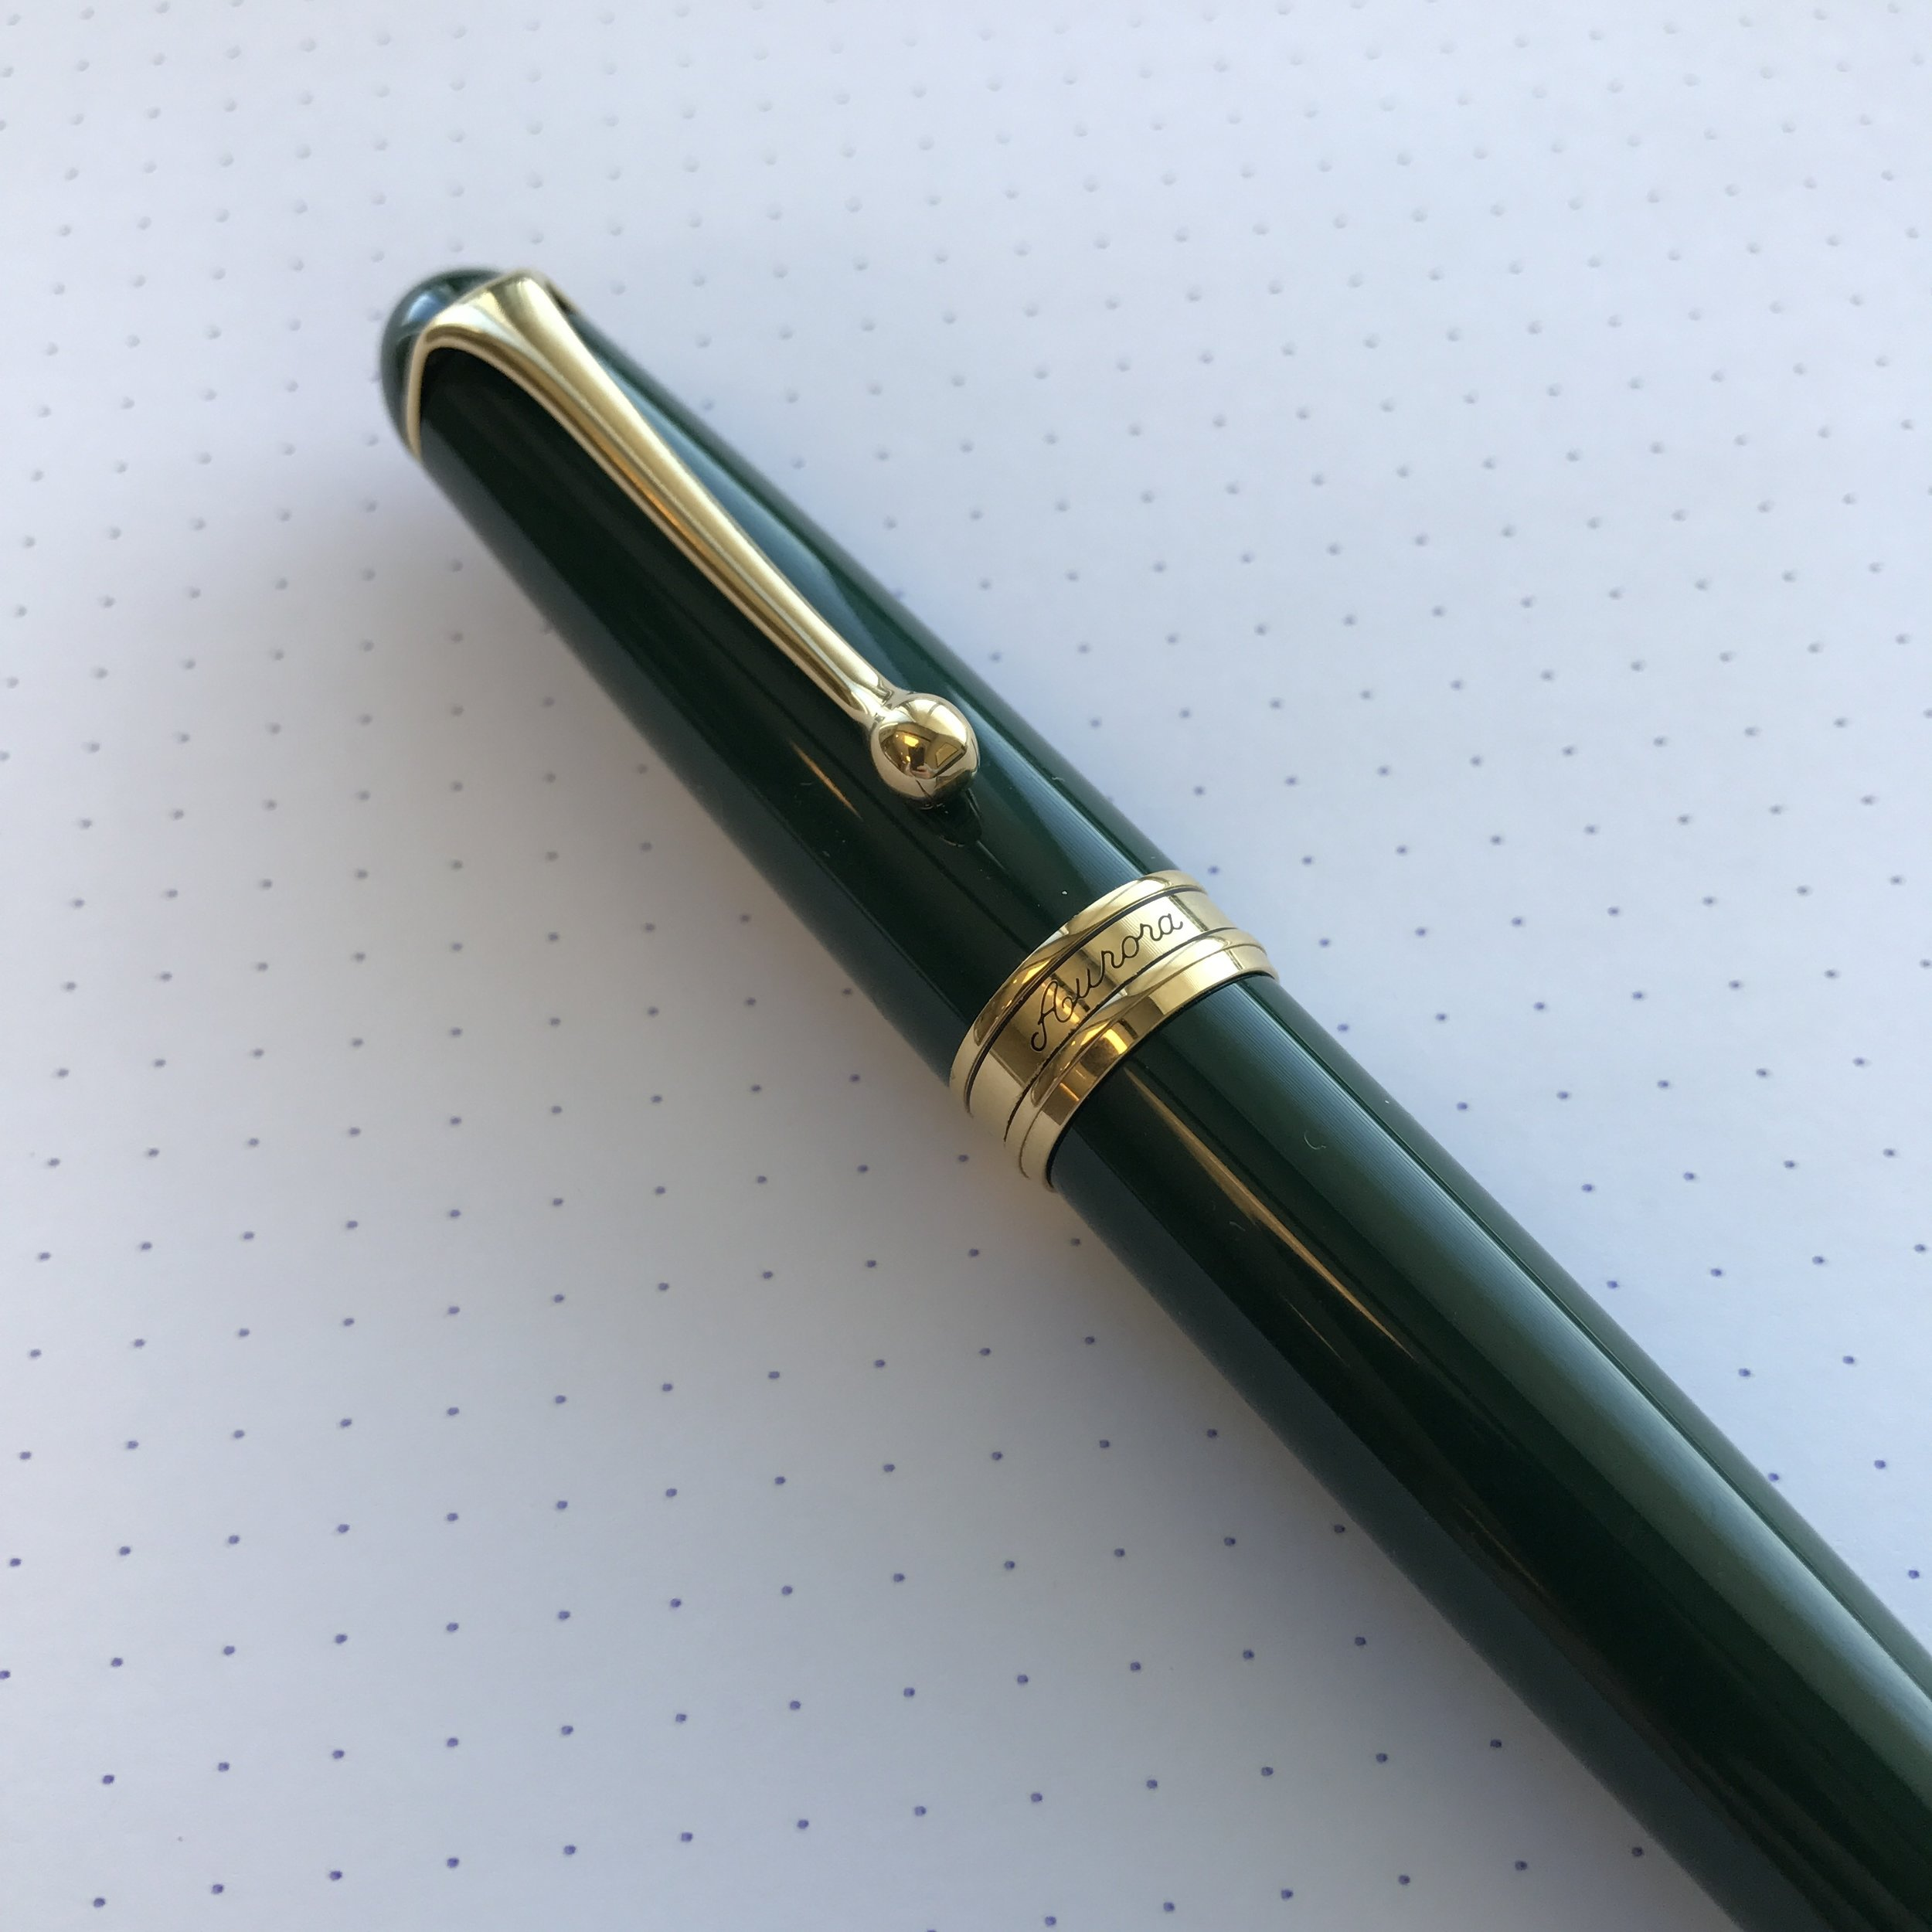 The Aurora 88 is a classic fountain pen. The version that I have is made from a dark green polished resin with gold trim.